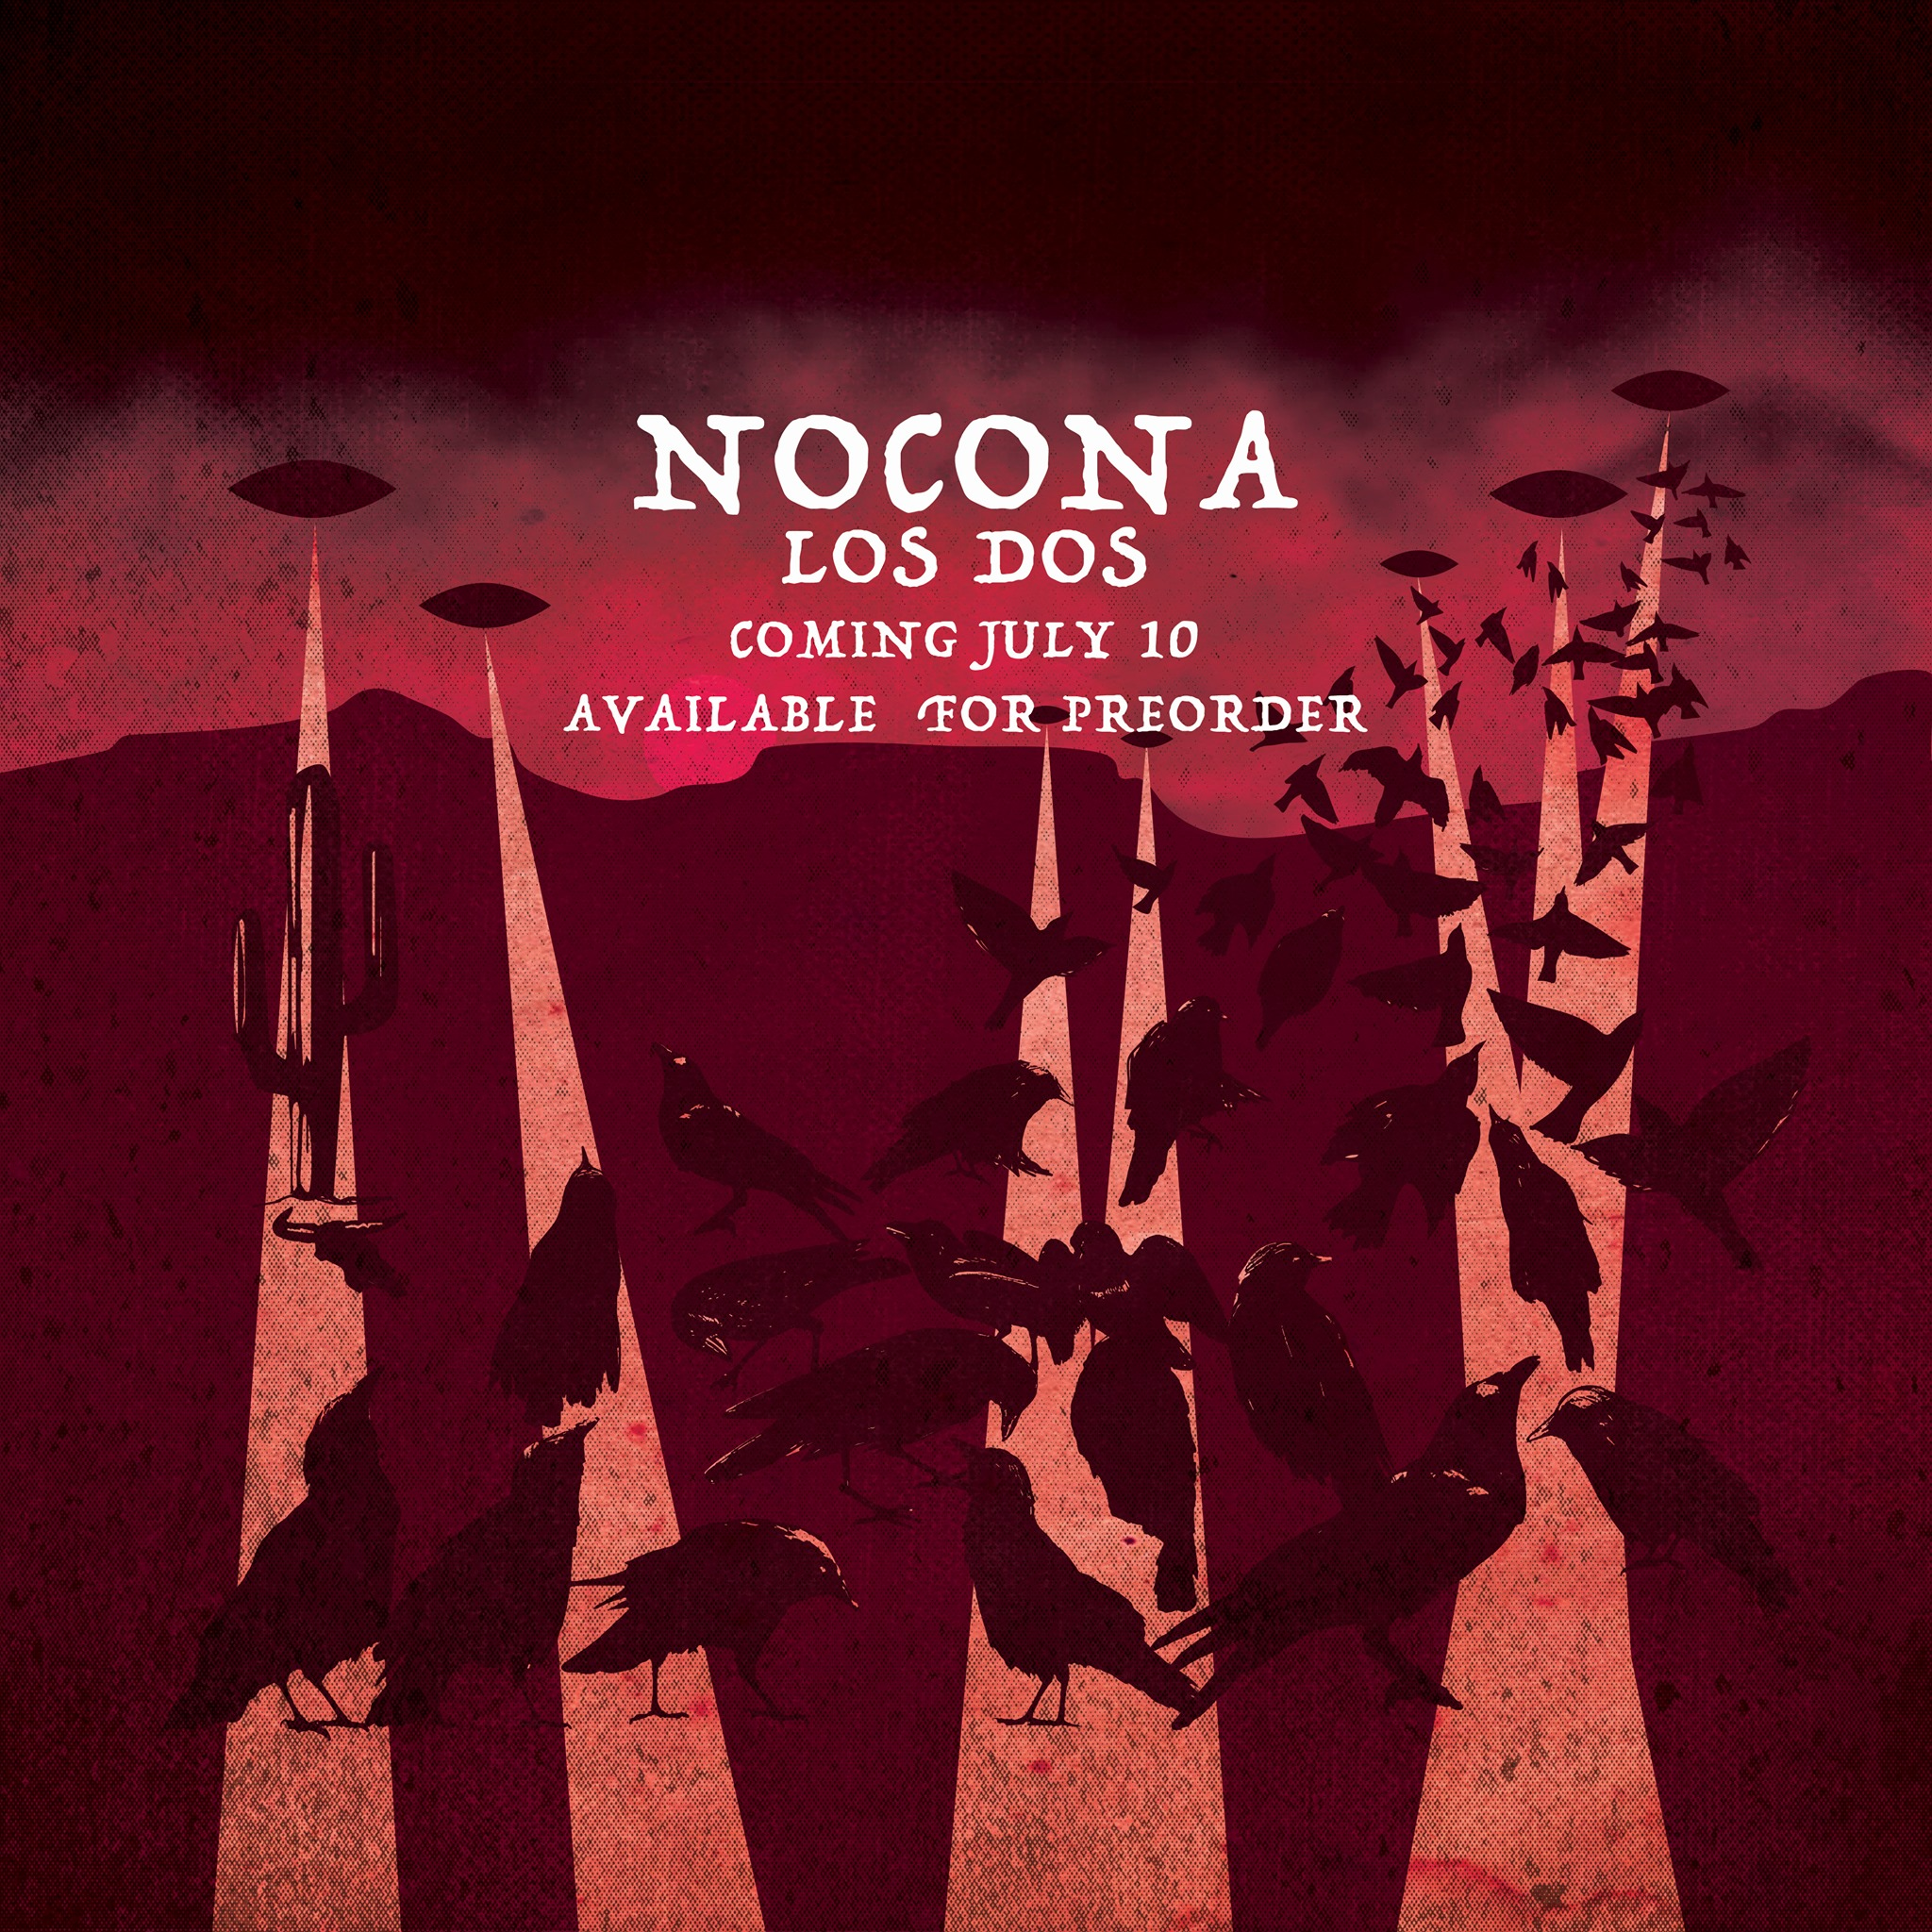 Announcing New Nocona Release 'Los Dos' AND Facebook Live Party